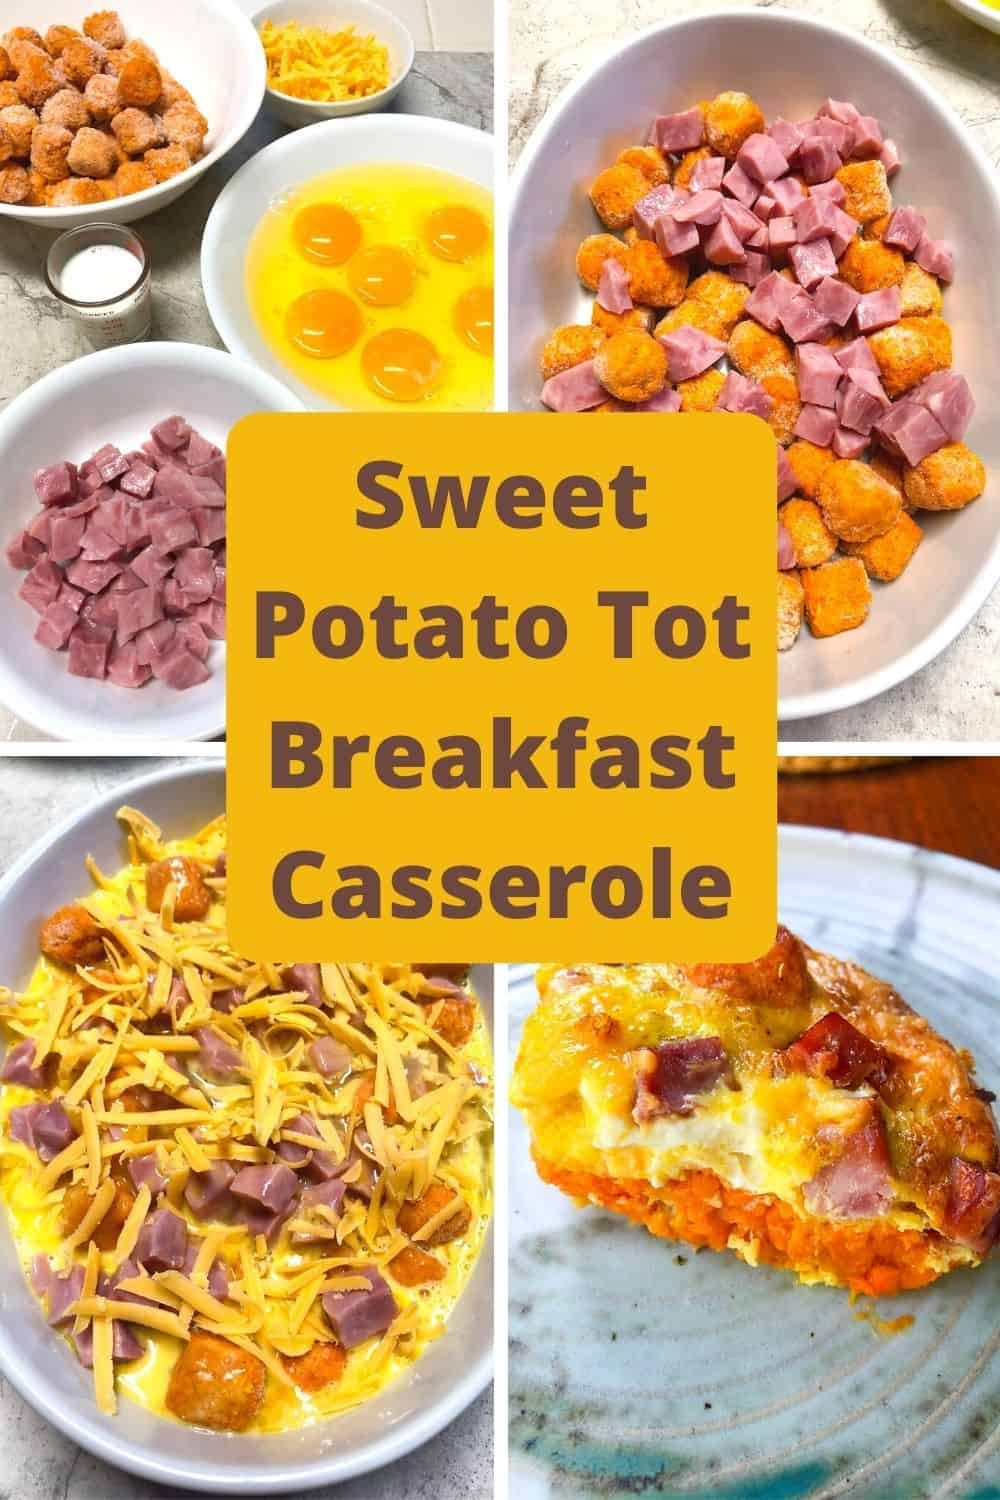 You Will Love The Hint Of Sweetness In This Healthy Sweet Potato Tots Breakfas Diabetic Friendly Dinner Recipes Diabetic Diet Recipes Diabetes Friendly Recipes